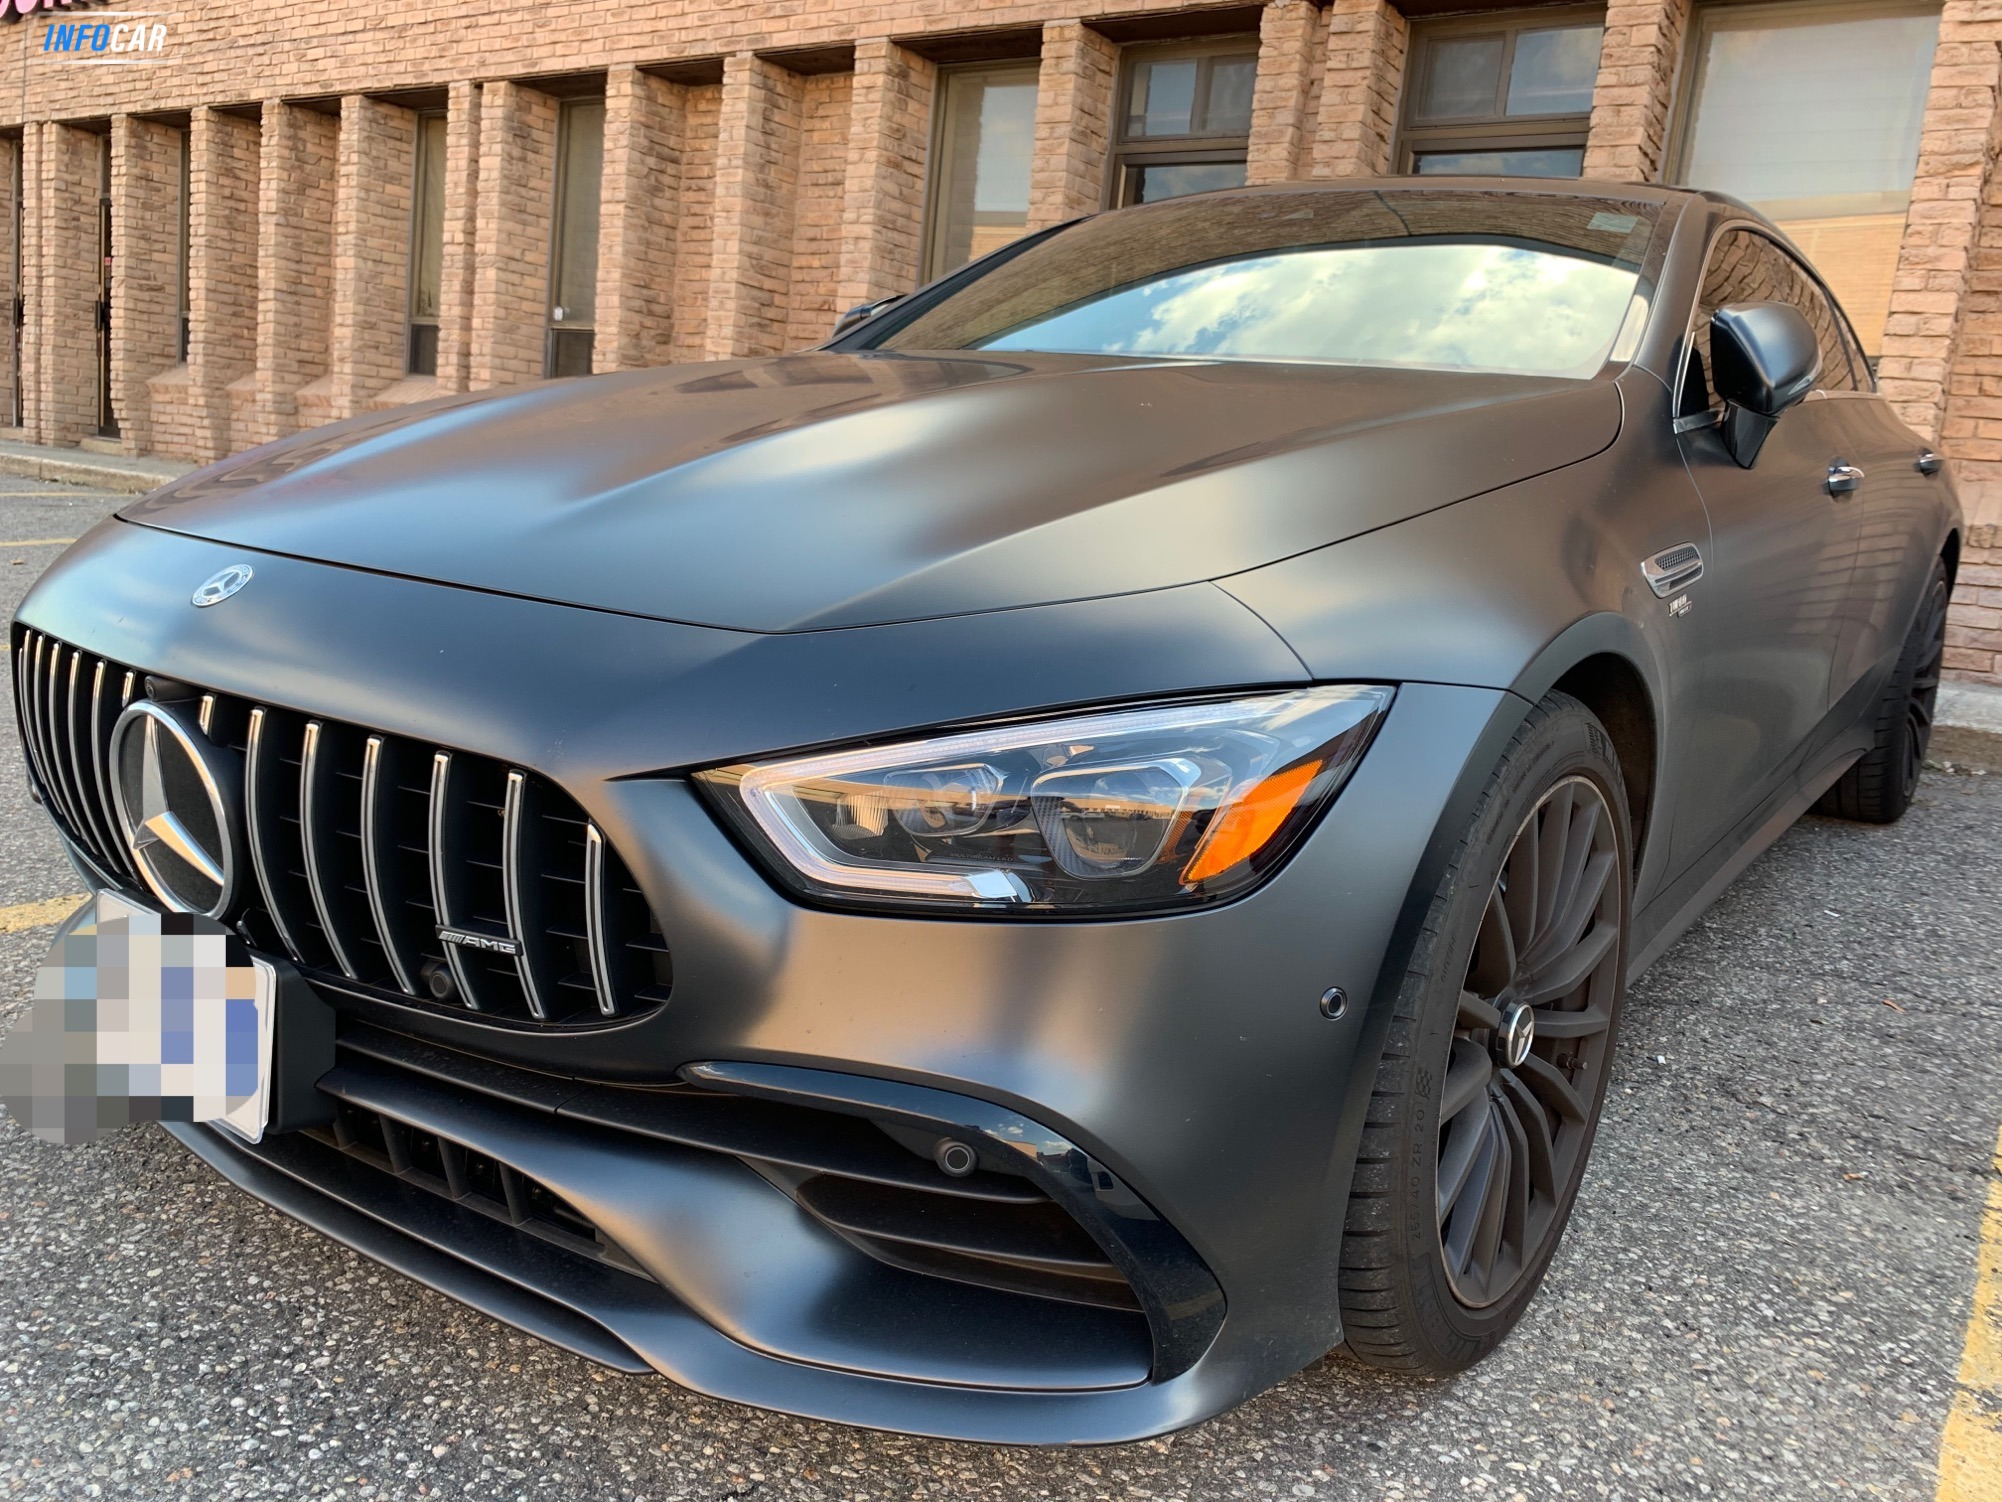 2020 Mercedes-Benz AMG GT 53 - INFOCAR - Toronto's Most Comprehensive New and Used Auto Trading Platform